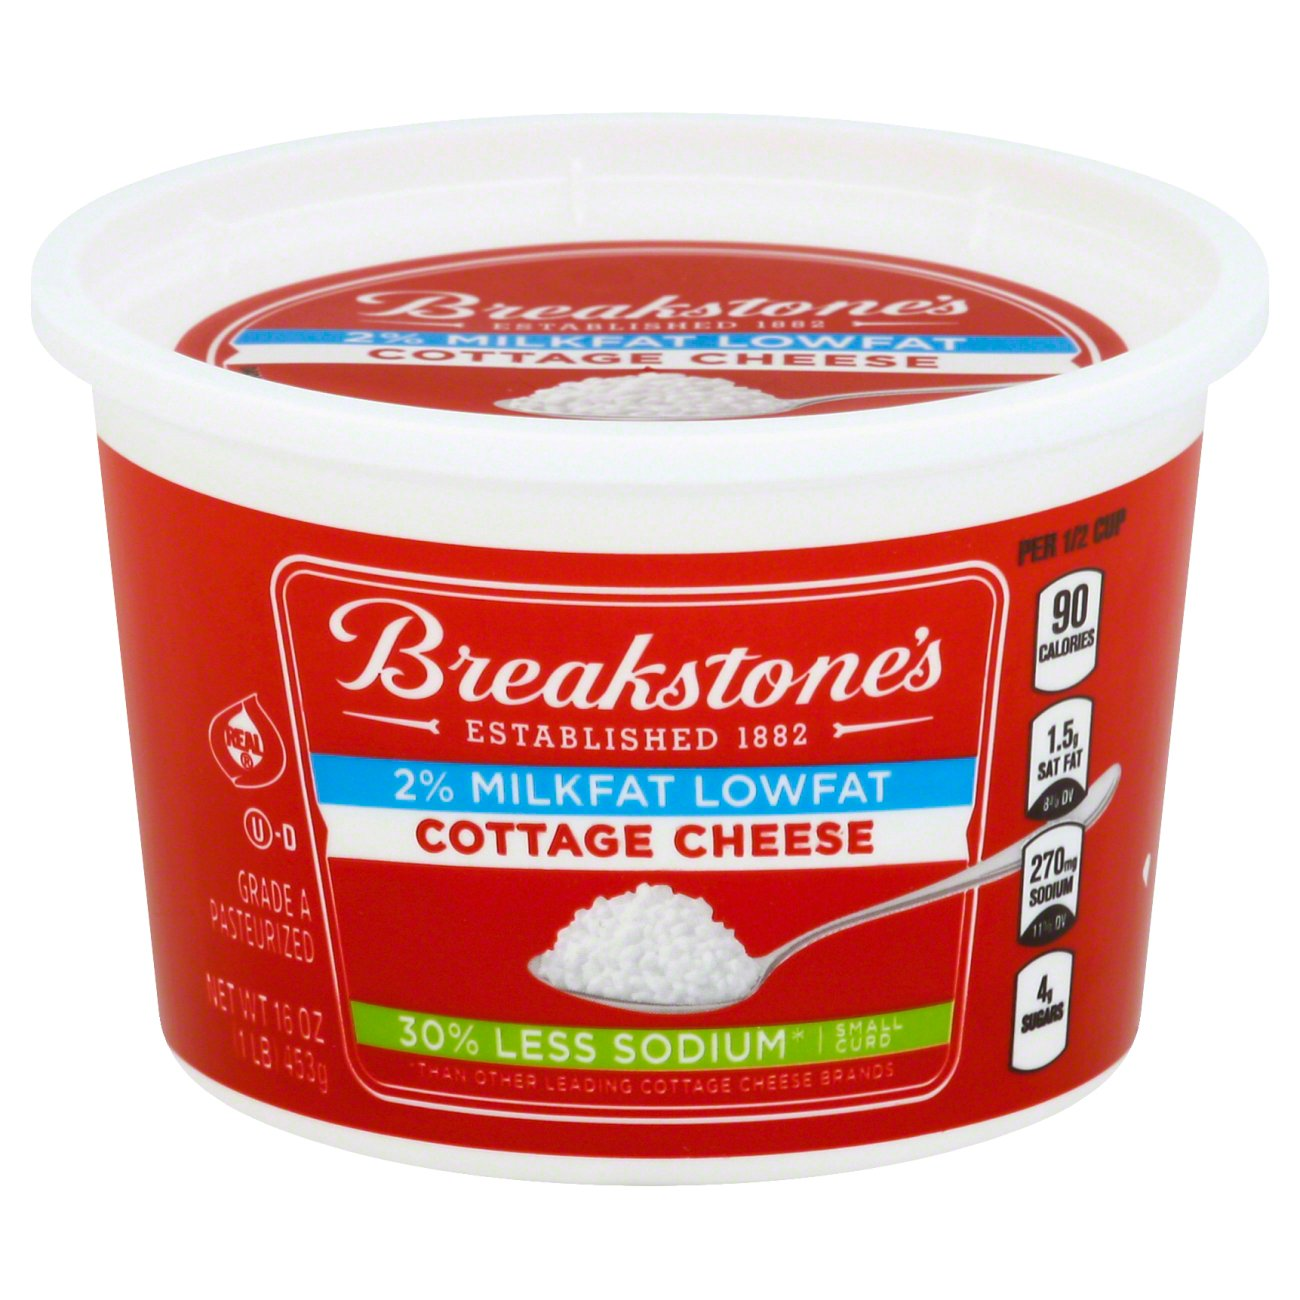 Breakstoneu0027s 2% Milkfat Lowfat Small Curd Cottage Cheese   Shop Cottage  Cheese At HEB